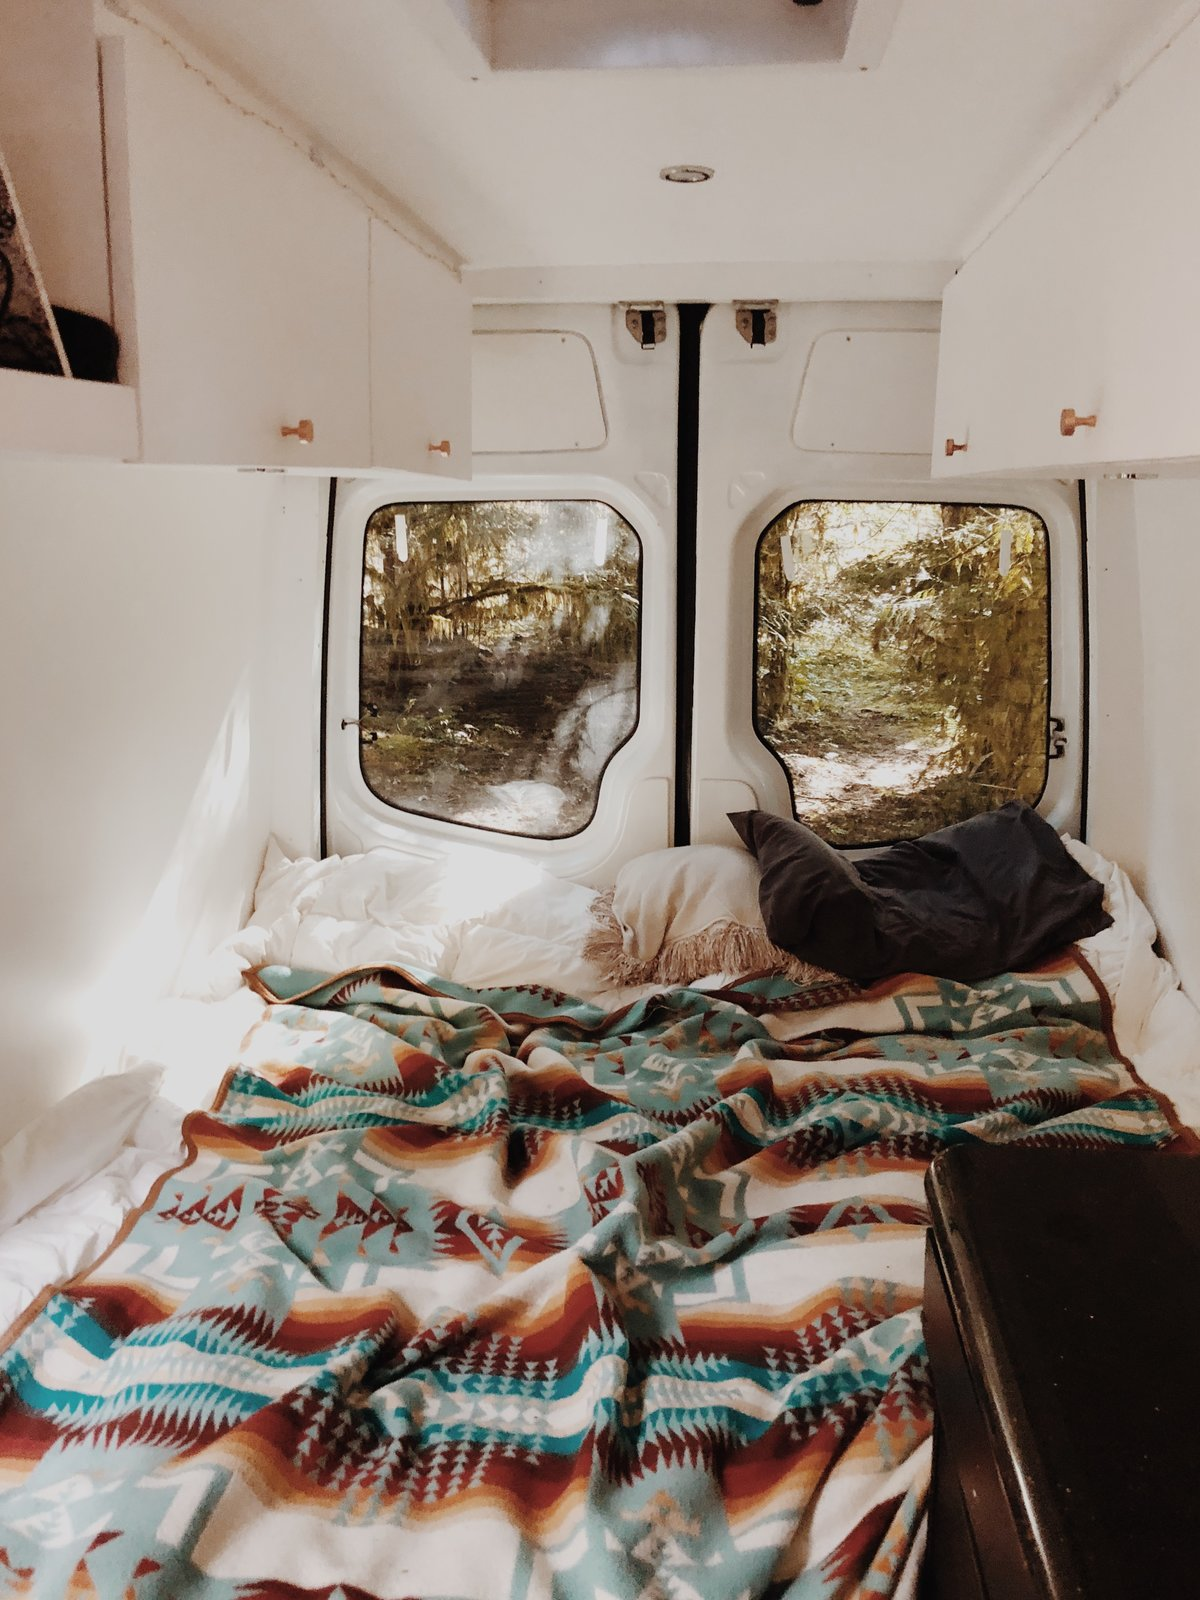 Bedroom, Recessed Lighting, and Bed A Pendleton wool blanket adorns the bed of a Mercedes Sprinter van.   Photo 7 of 12 in These Digital Nomads Live, Work, and Travel in a Sprinter Van